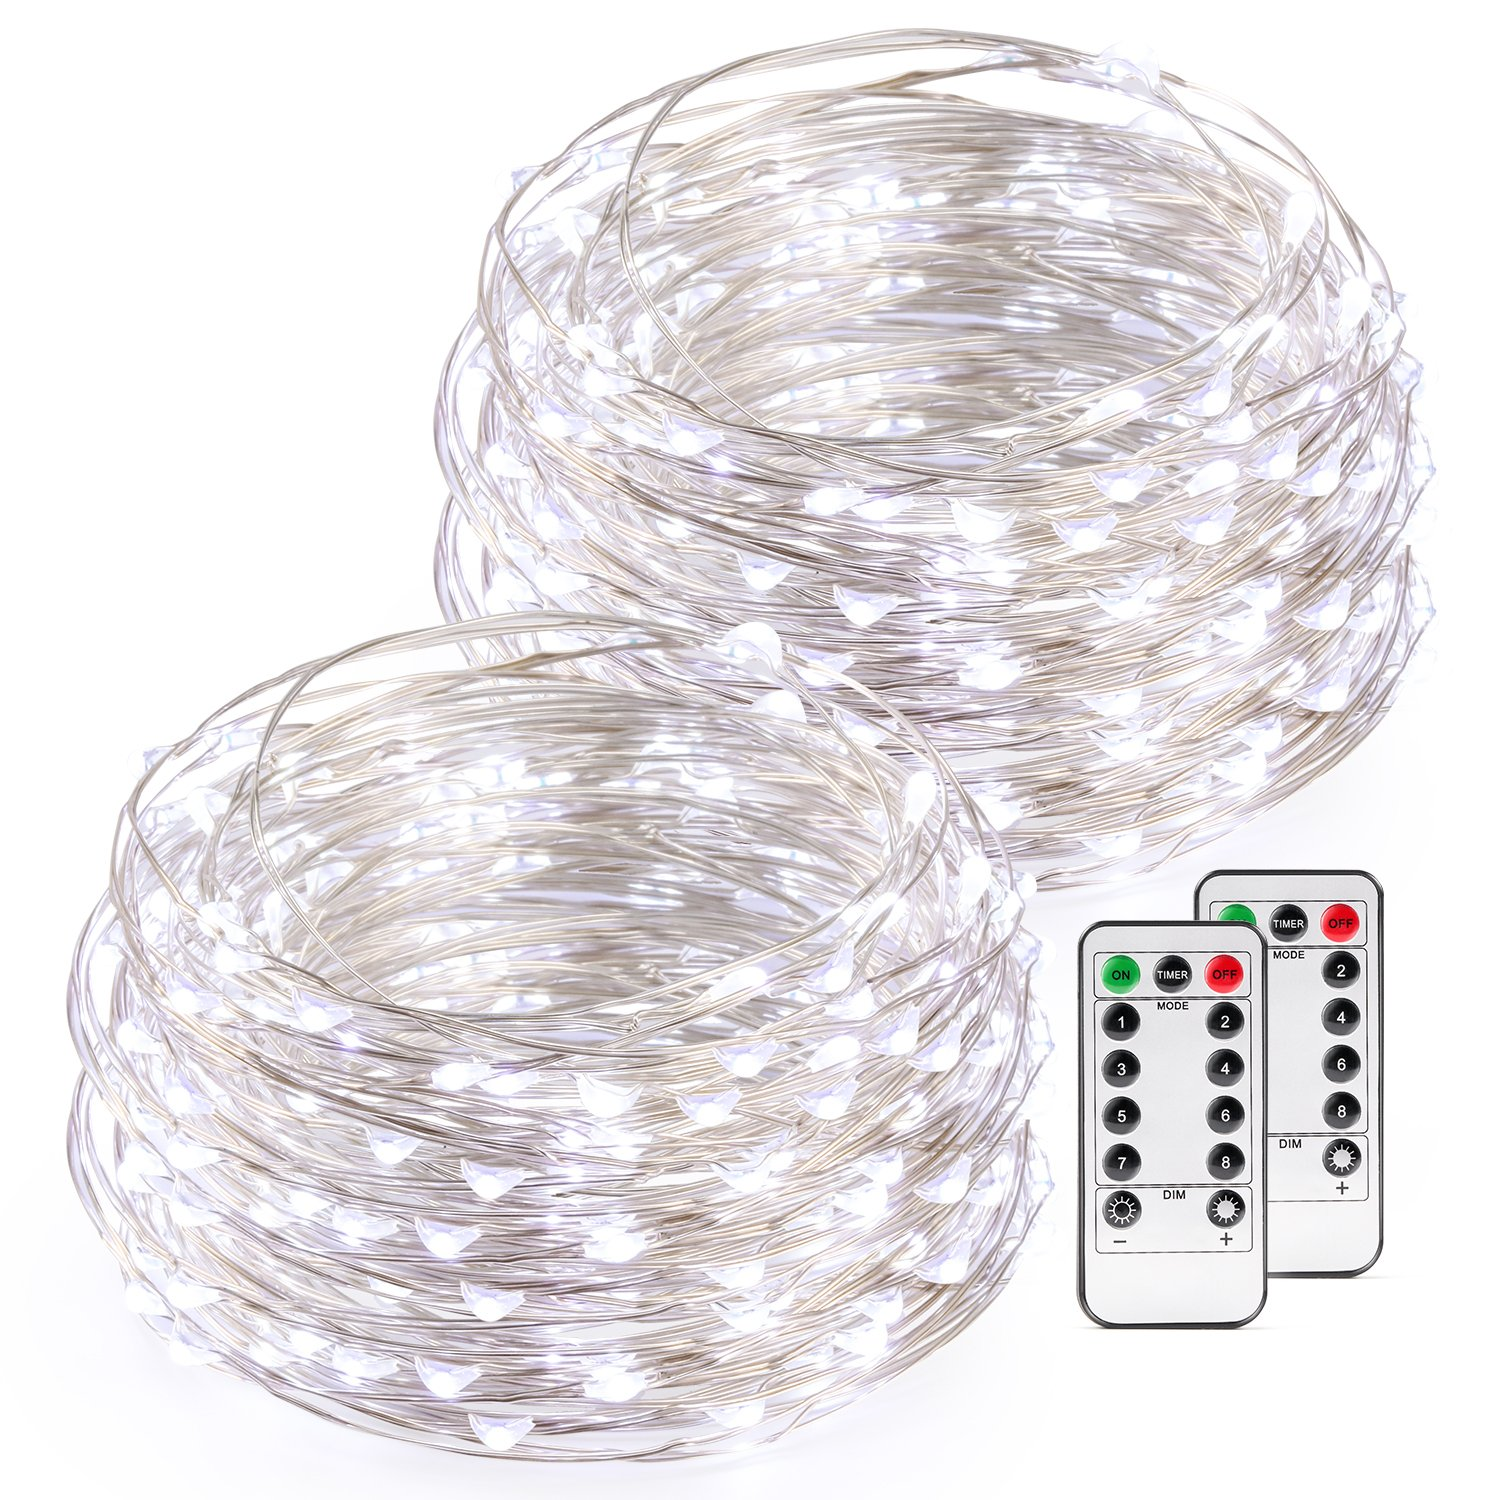 Kohree String Light Daylight White Remote Control Battery Operated Waterproof 8 Modes 50 LED 16.4ft/5M Silver-Coated Copper Wire Firefly Rope Lights 2 Packs